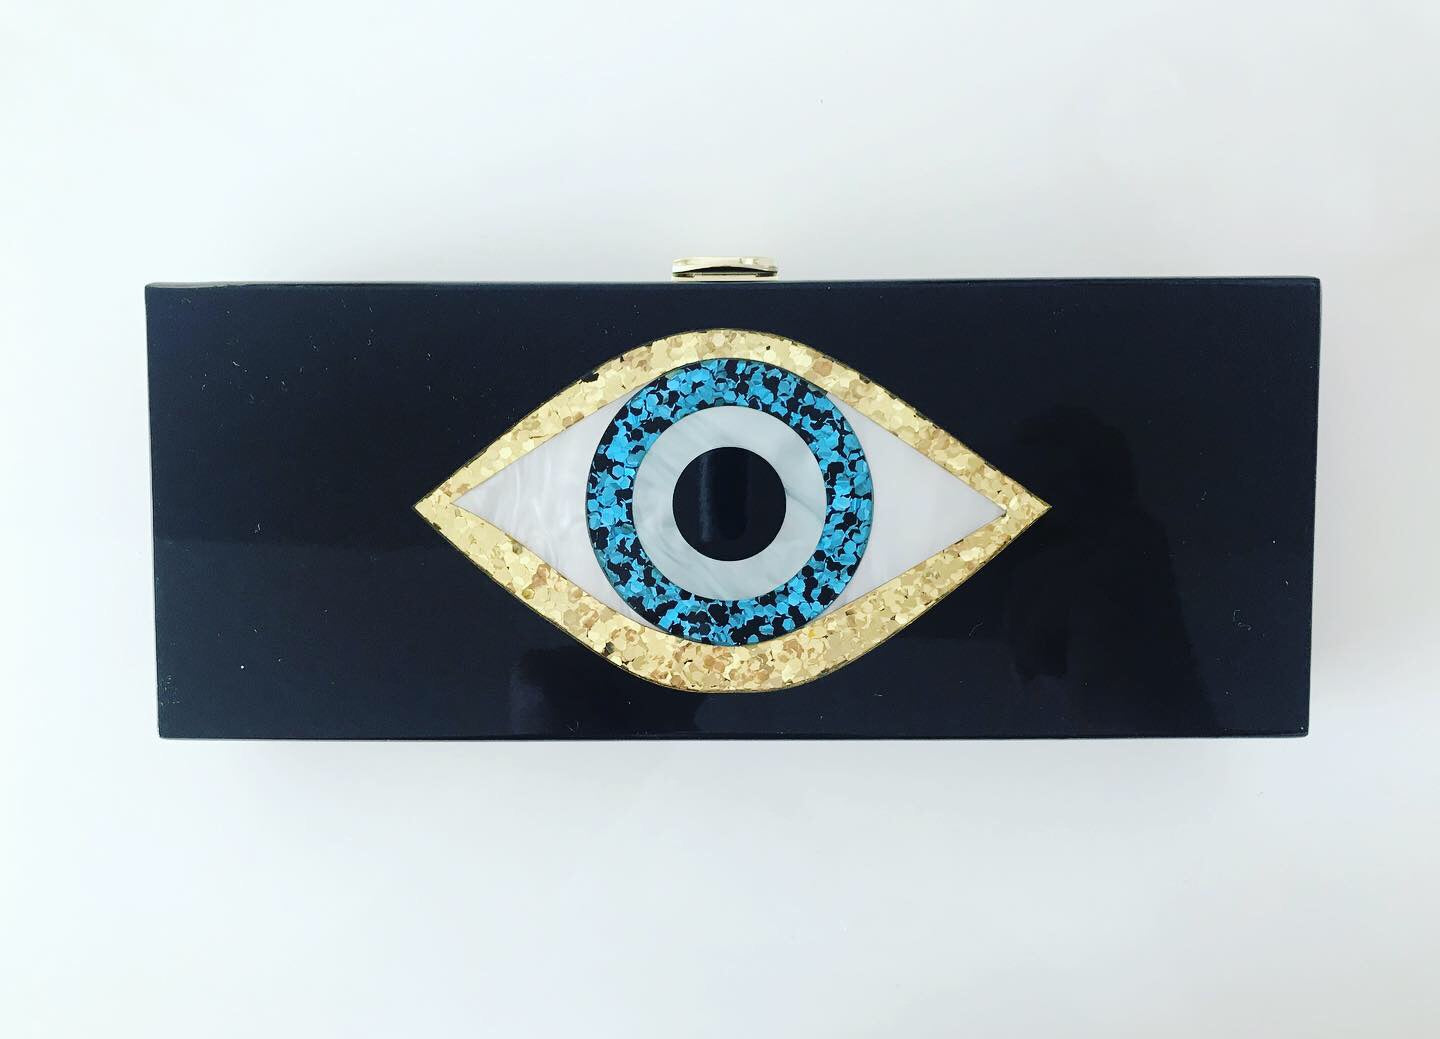 Black Acrylic Clutch with Glitter Evil Eye